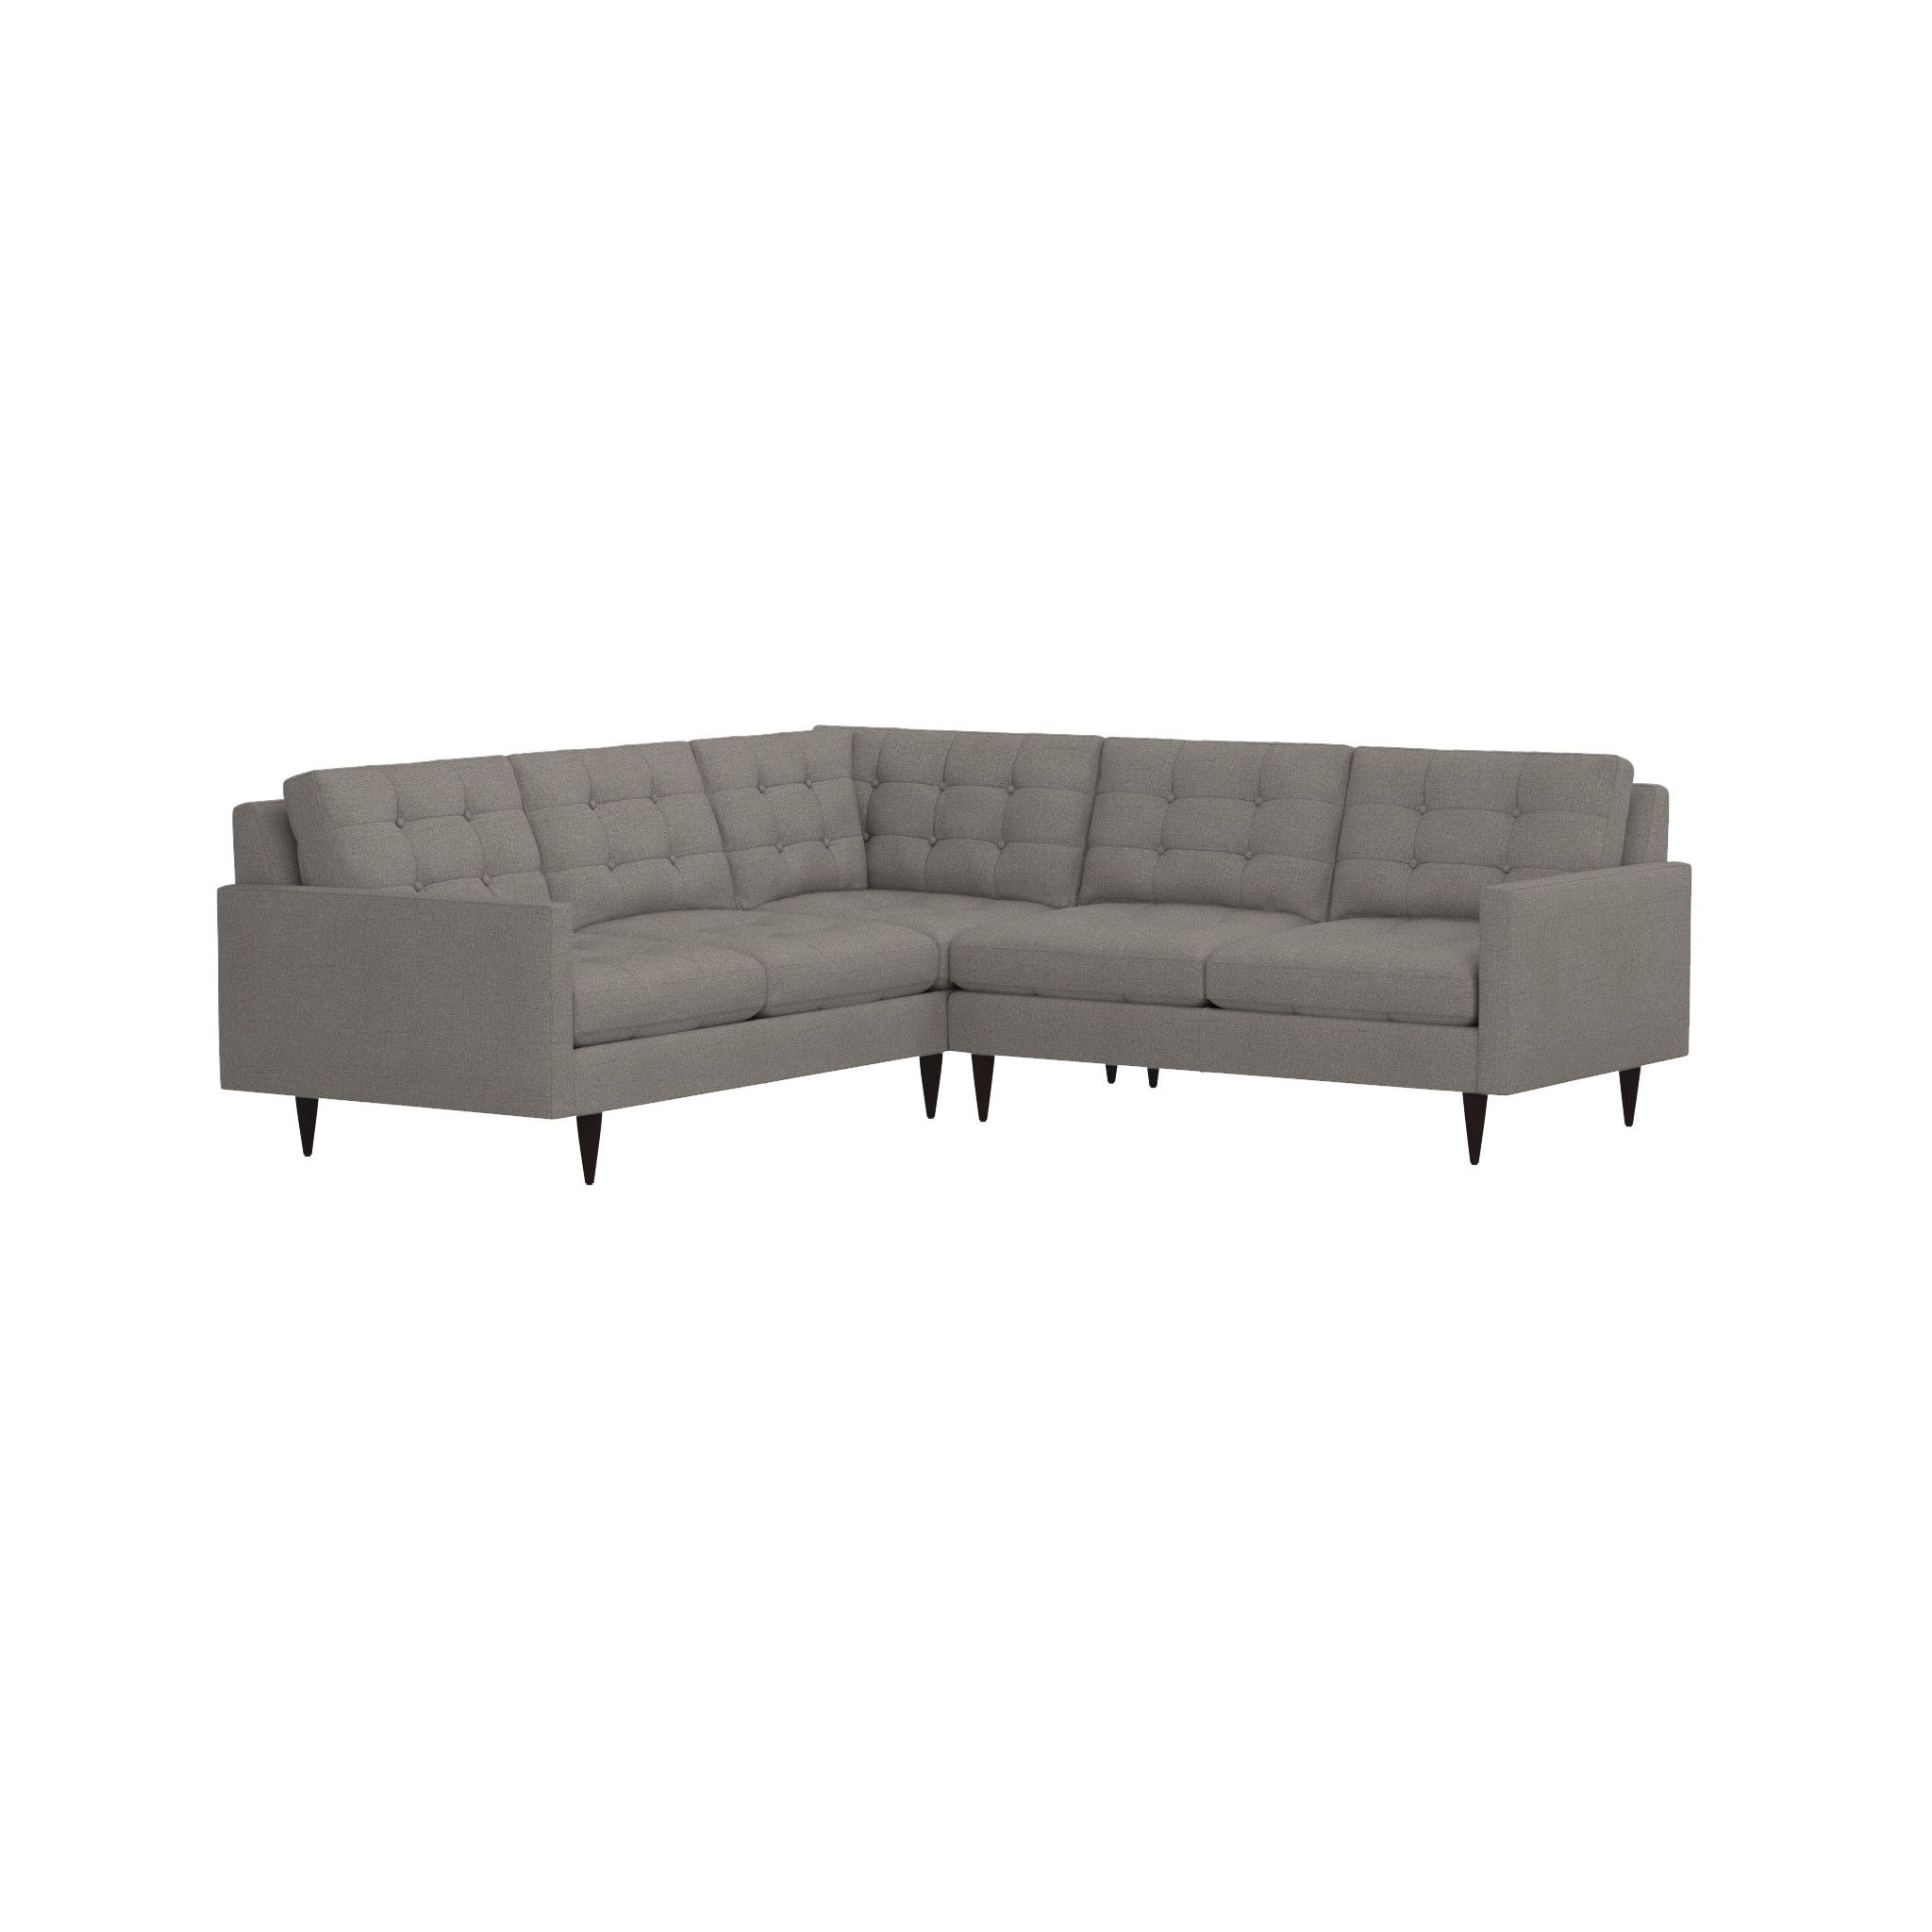 Shop Petrie 2 Piece Corner Midcentury Sectional Sofa. Now A Crate And  Barrel Classic, Its Pure 1960s Aesthetic Is Scaled Deep So You Can Sit Firm  And ...